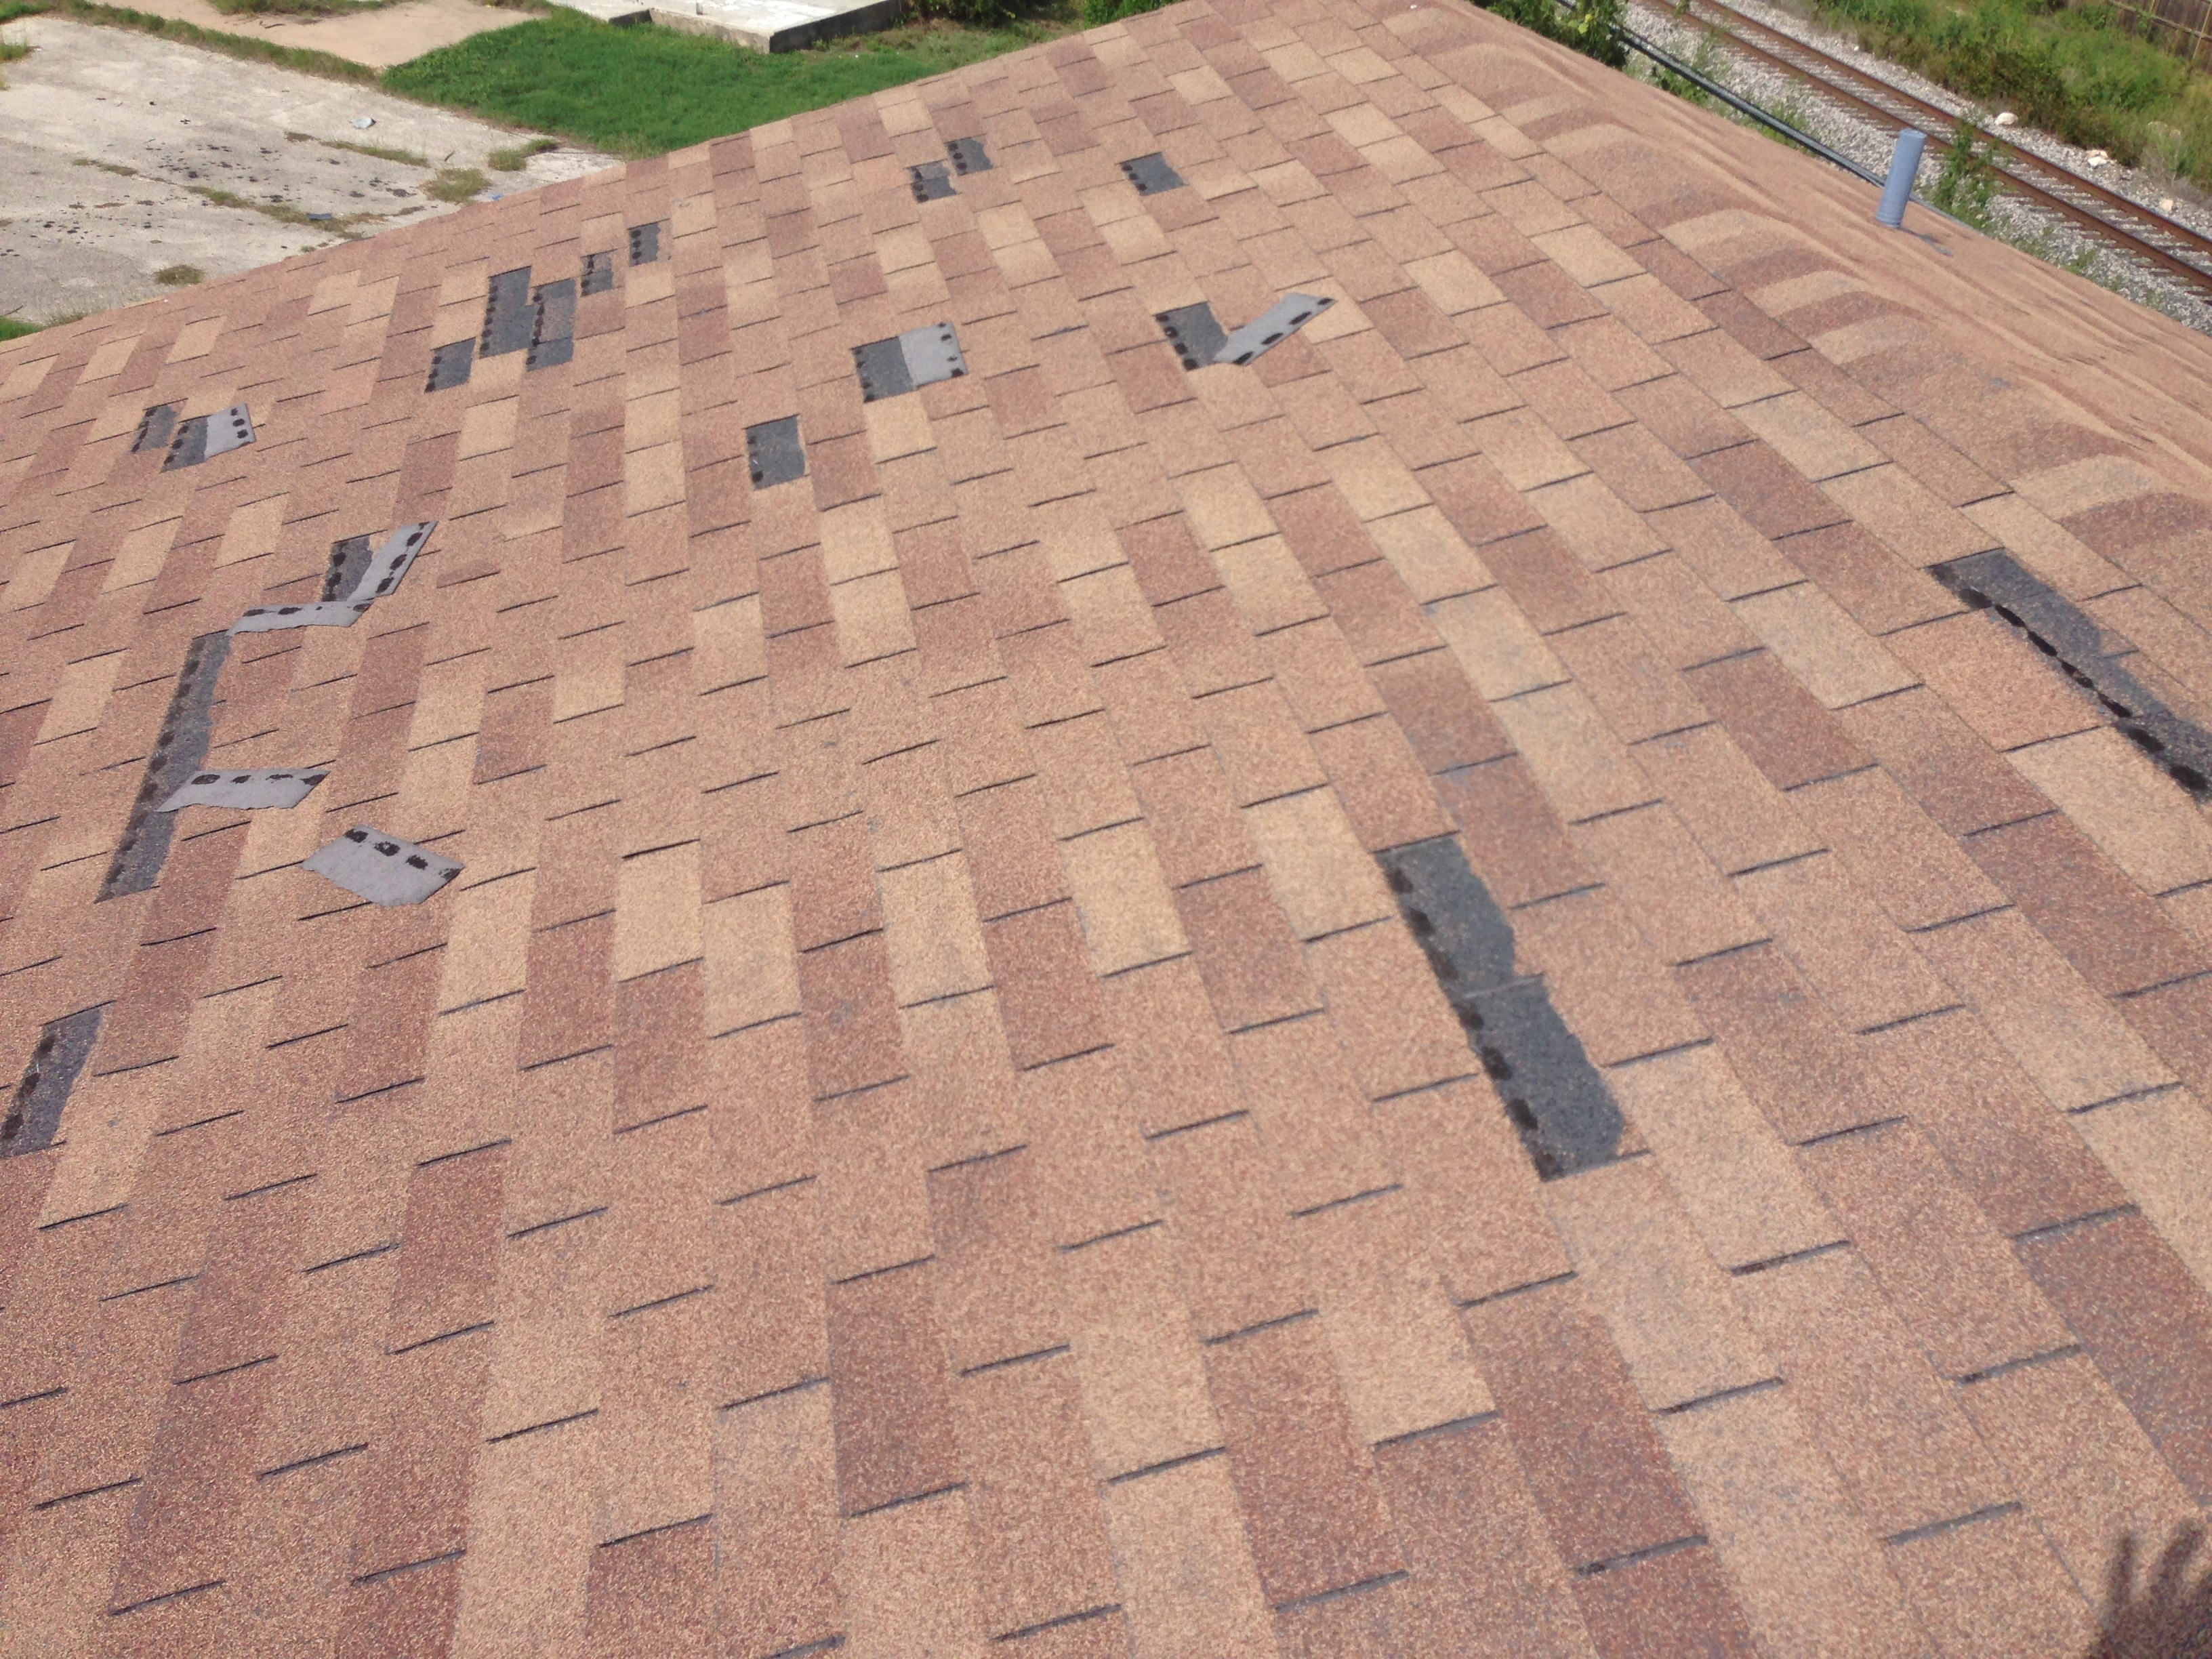 Roofing Austin Texas Five Roof Associated Dangers